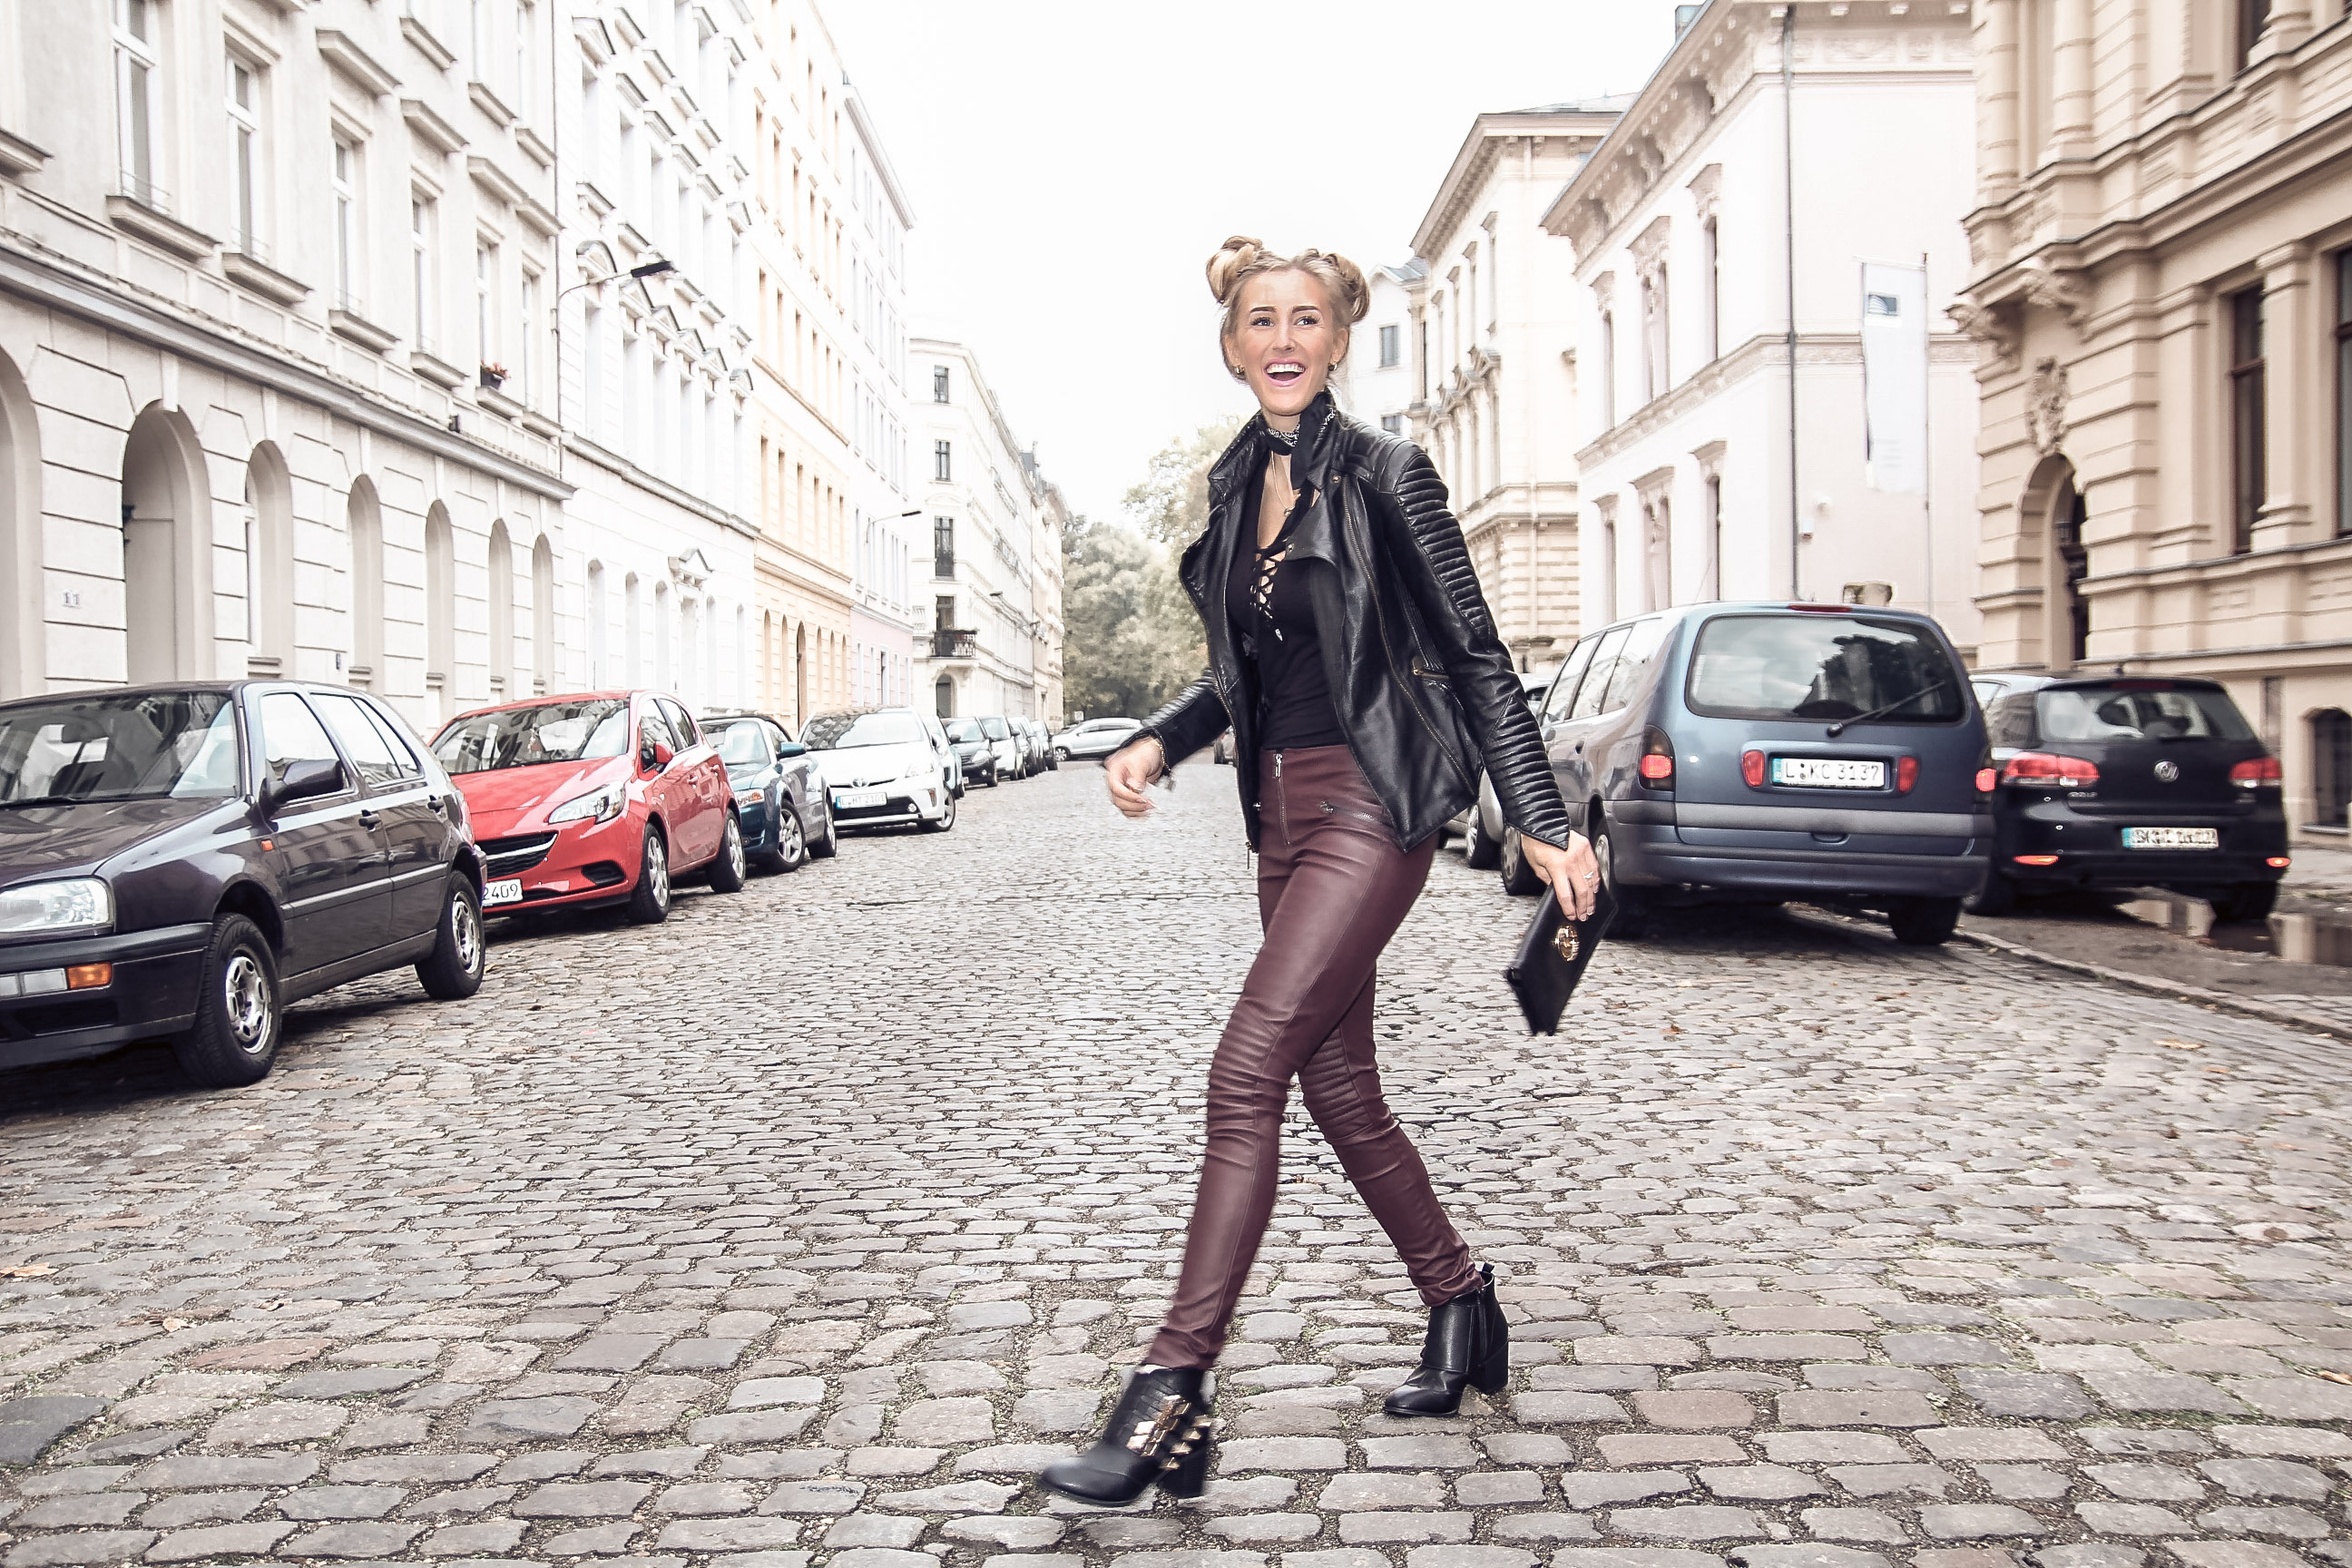 Top 10 Fashionblogger Modeblogger Leslie Huhn - Leder Outfit of the Week